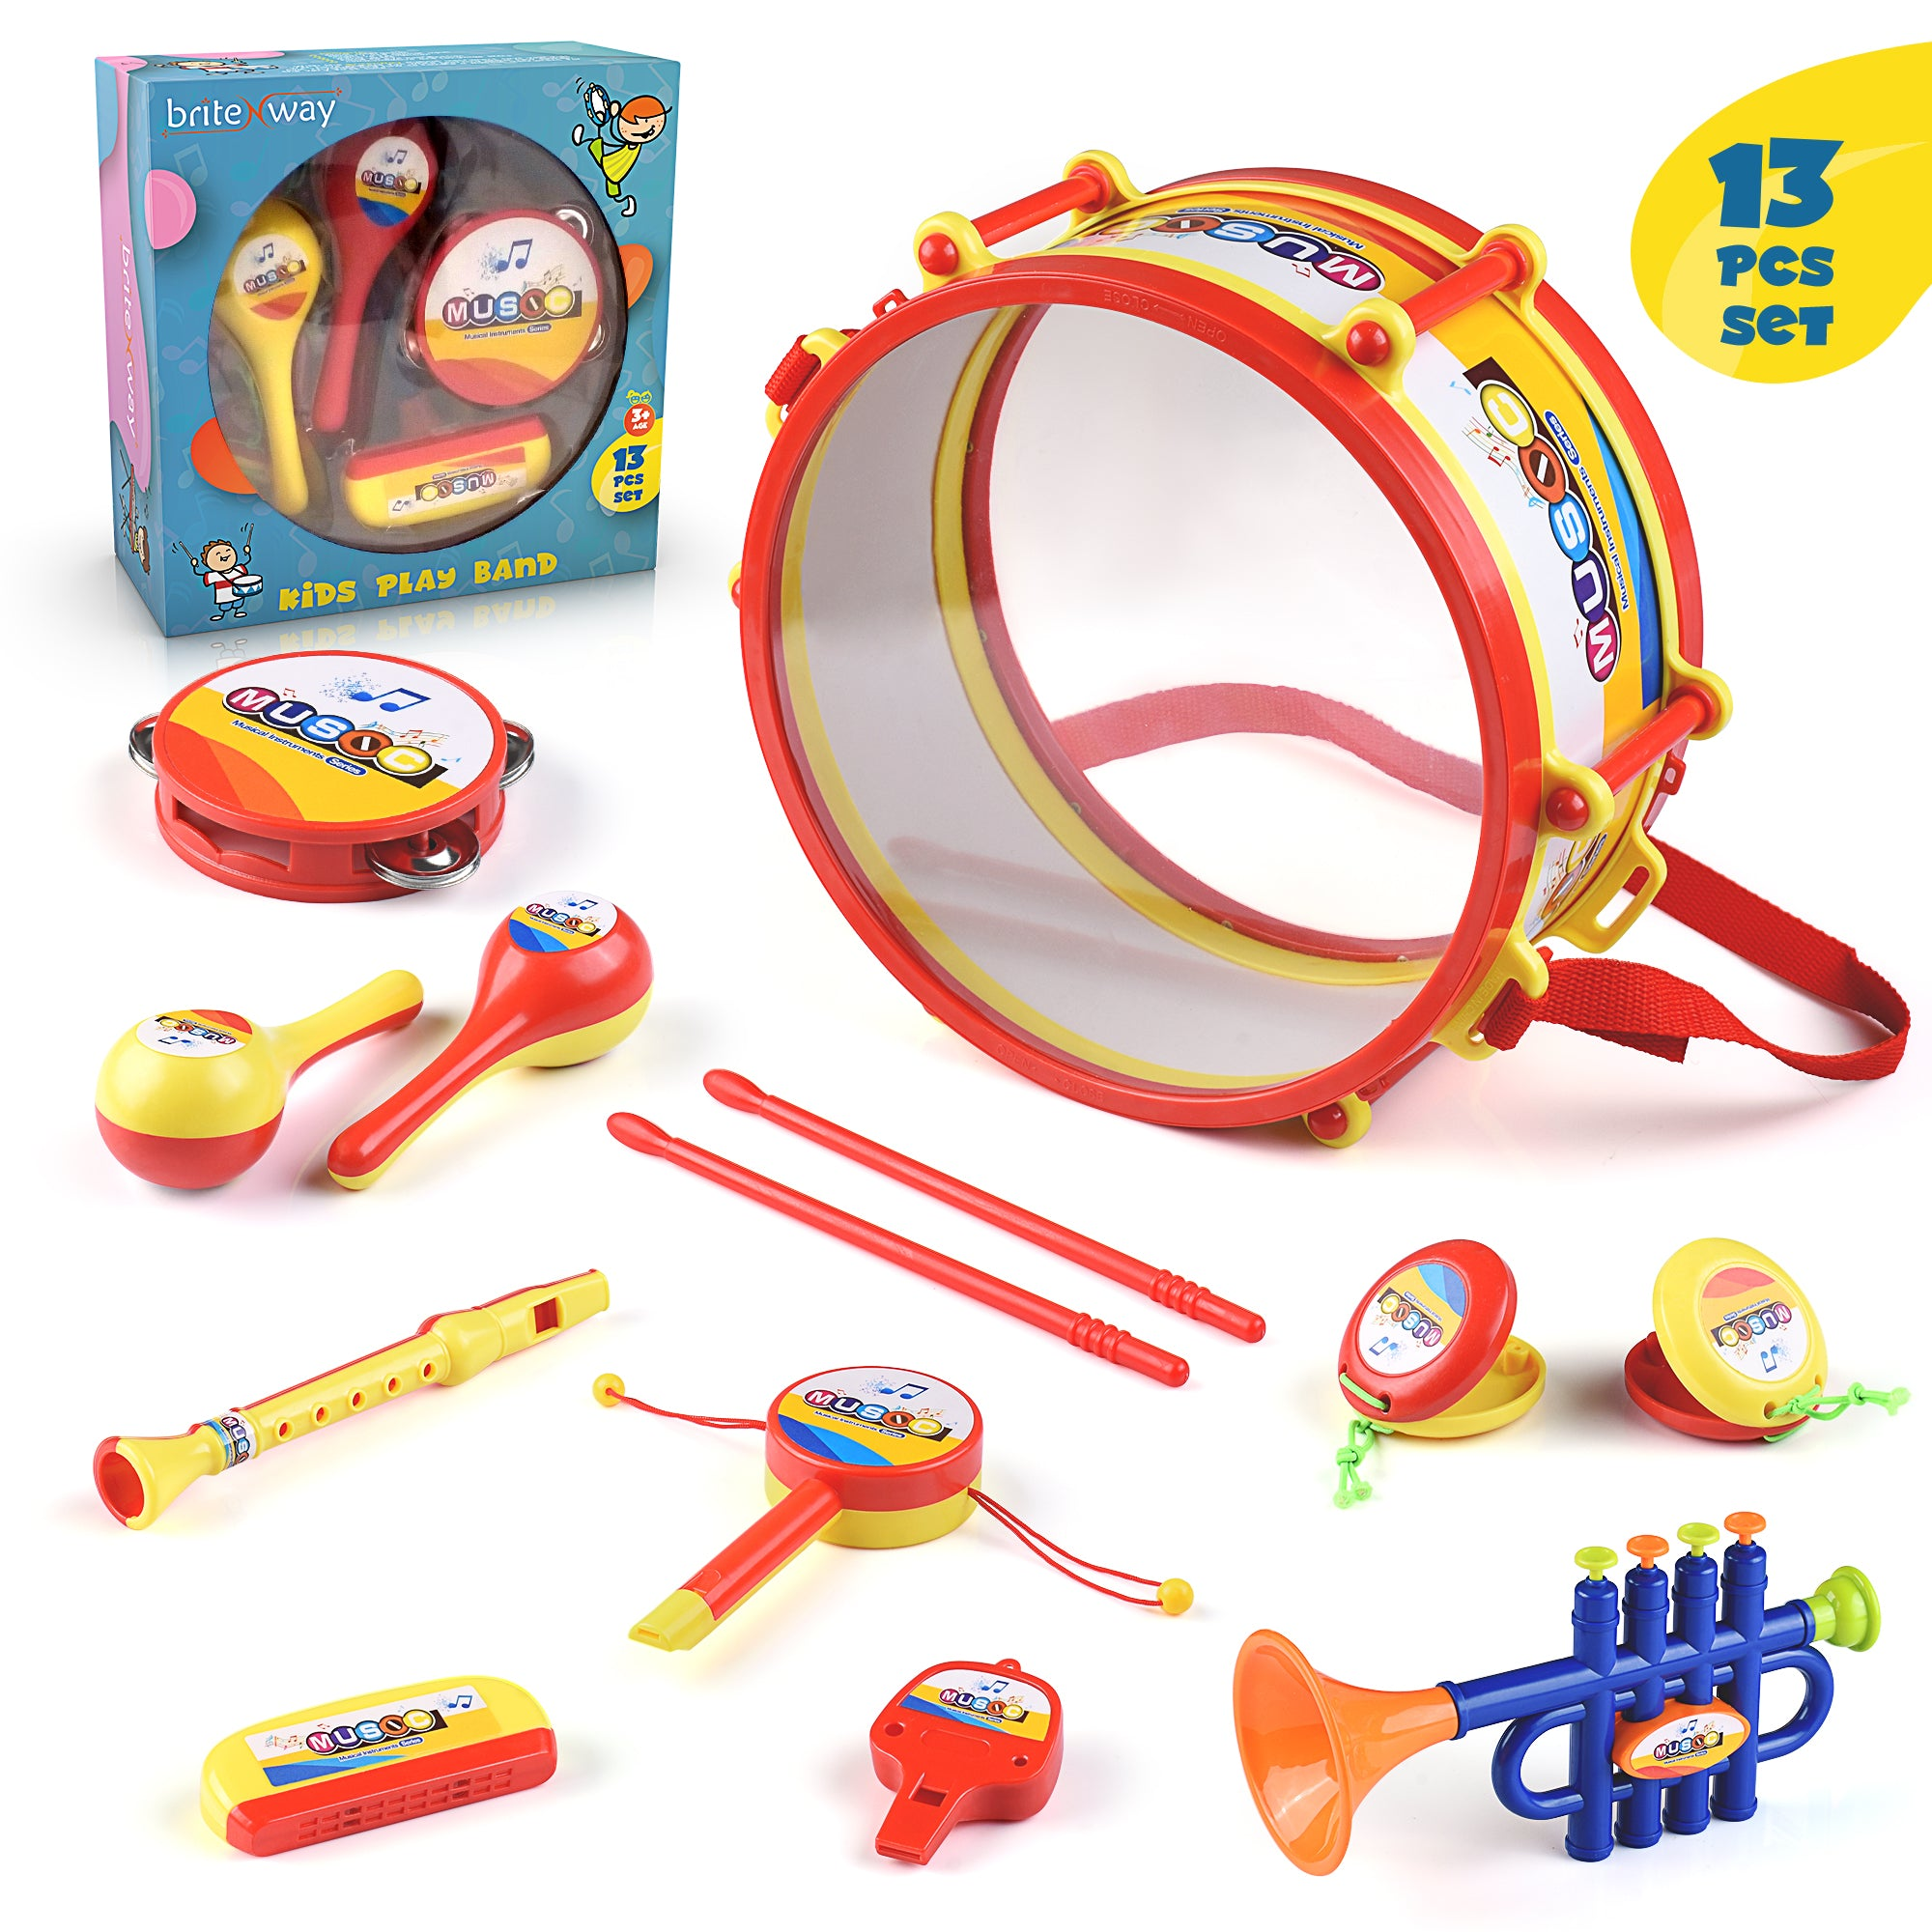 BRITENWAY. Toddler Music Toys, Percussion Musical Instruments for Boys and Girls, Educational Musical Toy Set with Kids Drum Set, Percussion, Tambourine, Trumpet, Maraca, Harmonica, Flute